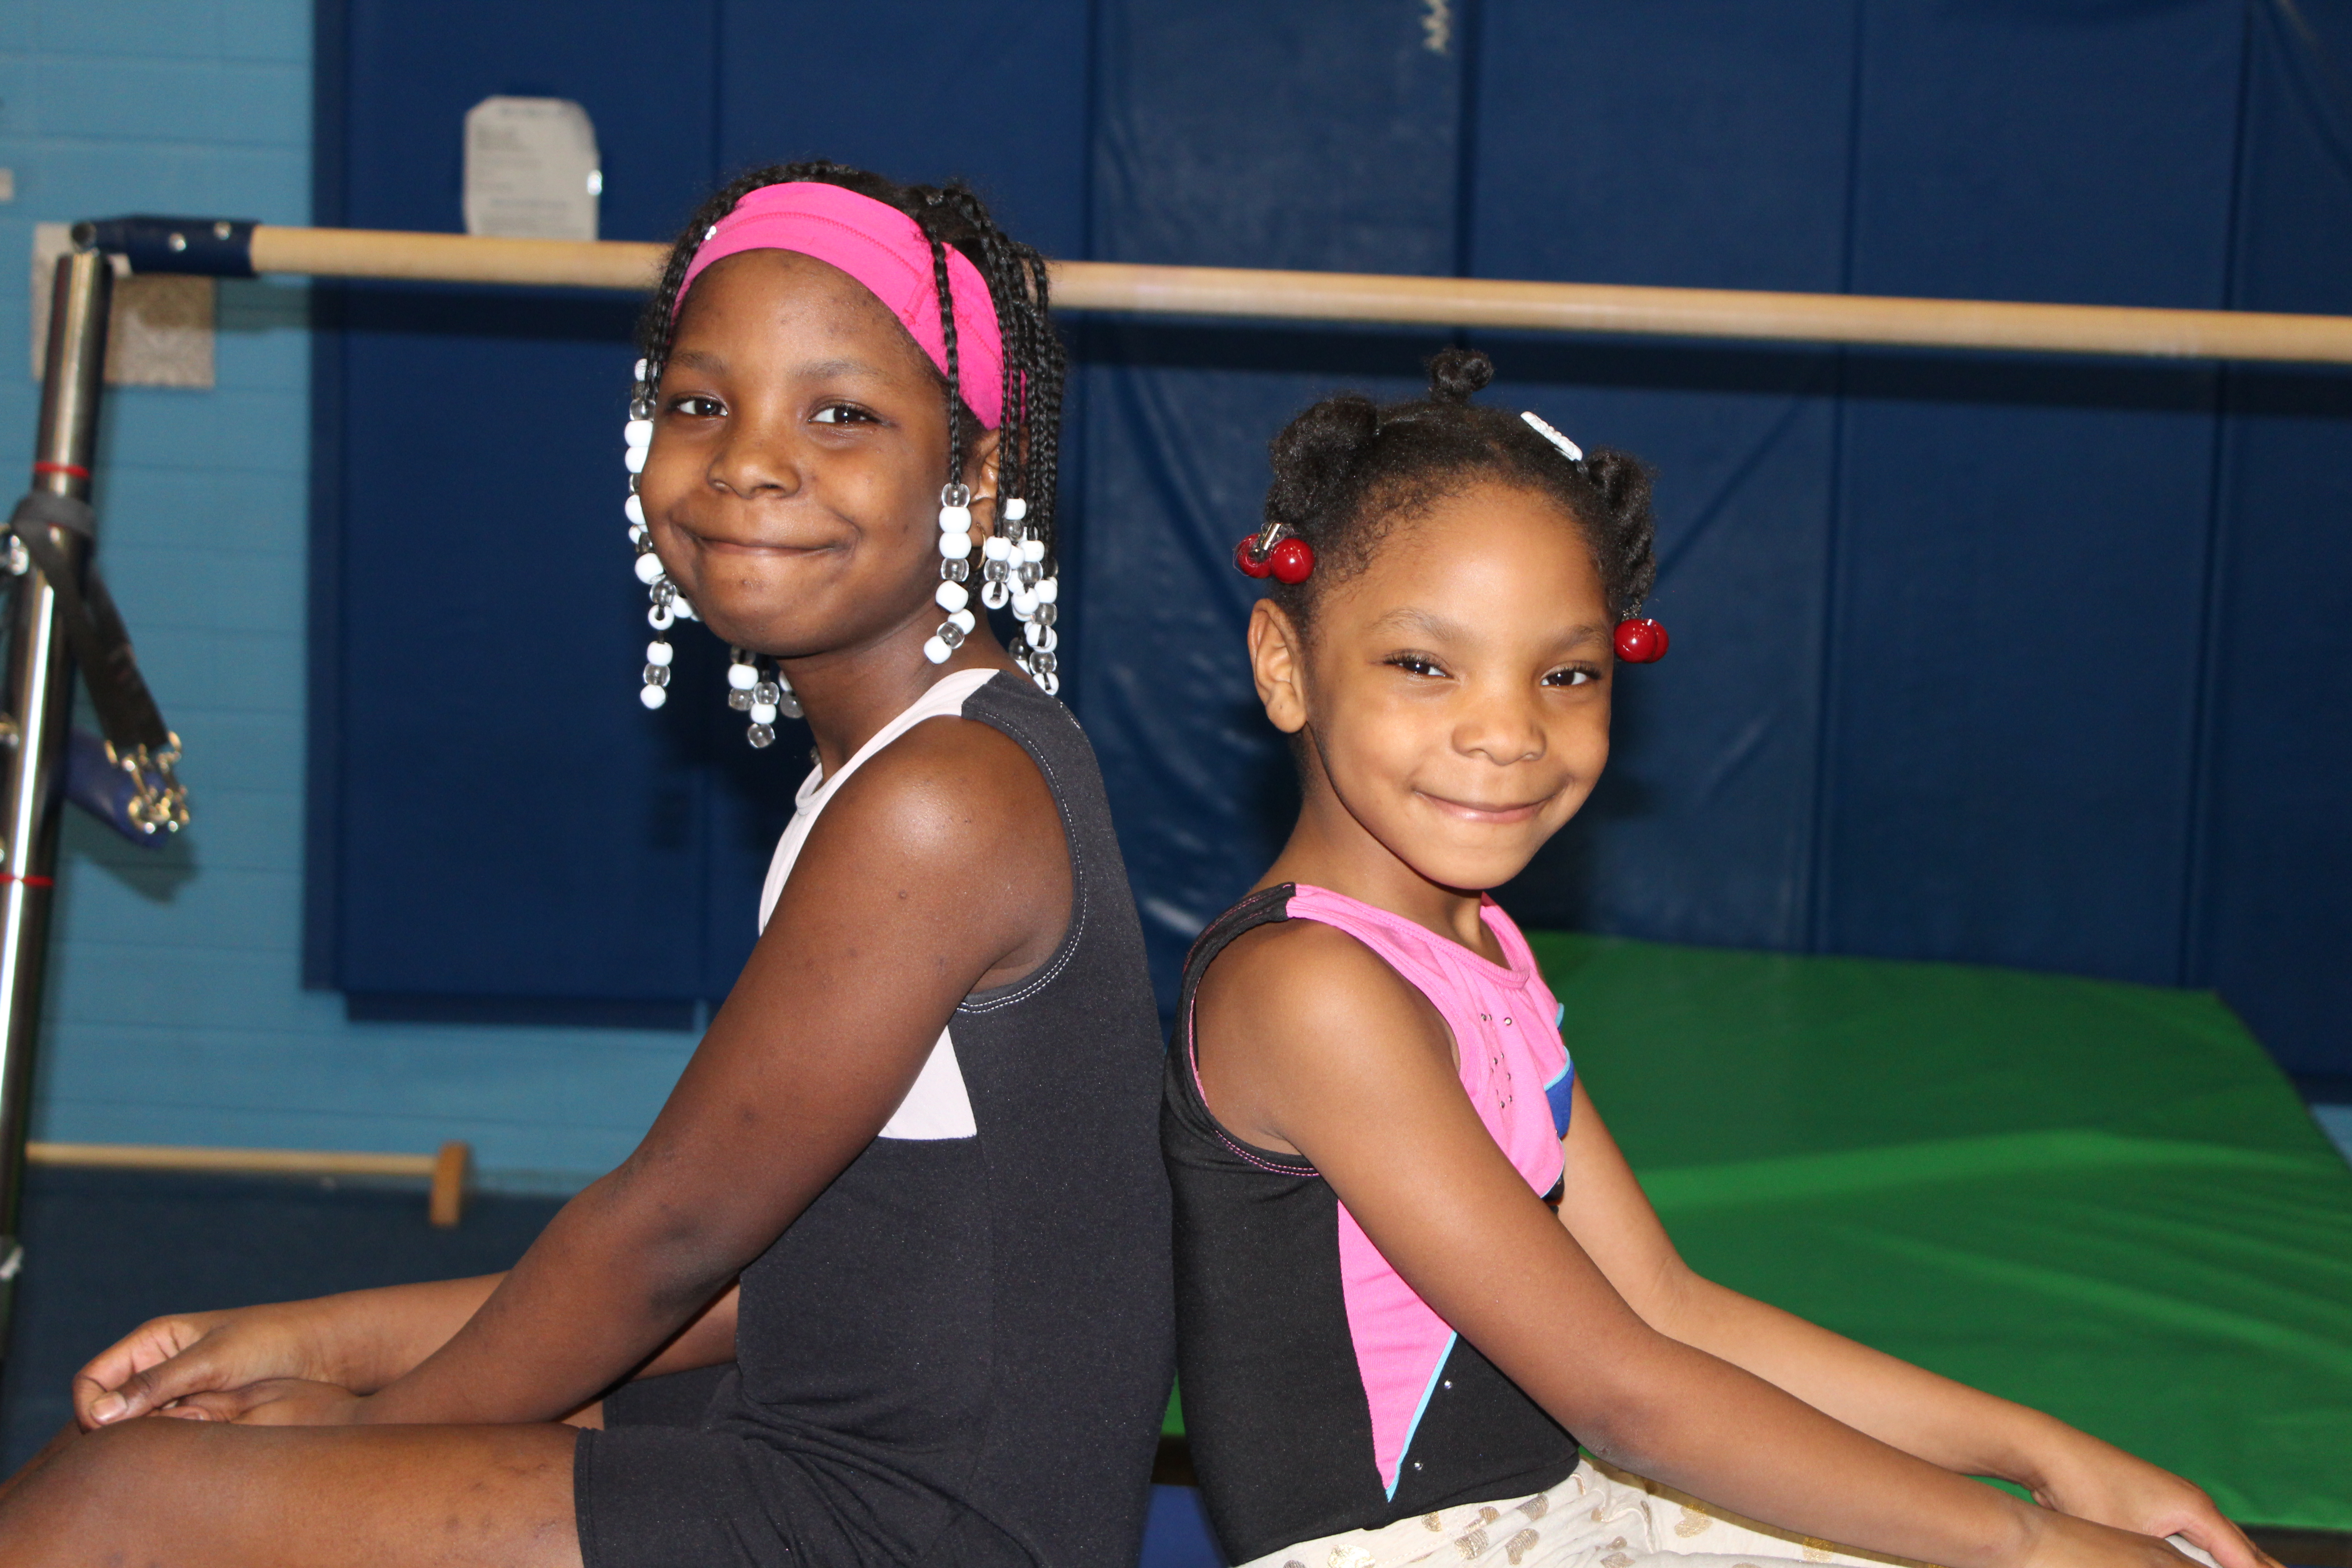 Family Reaps Benefits of Membership - Meet Aubree and Caleese - YMCA